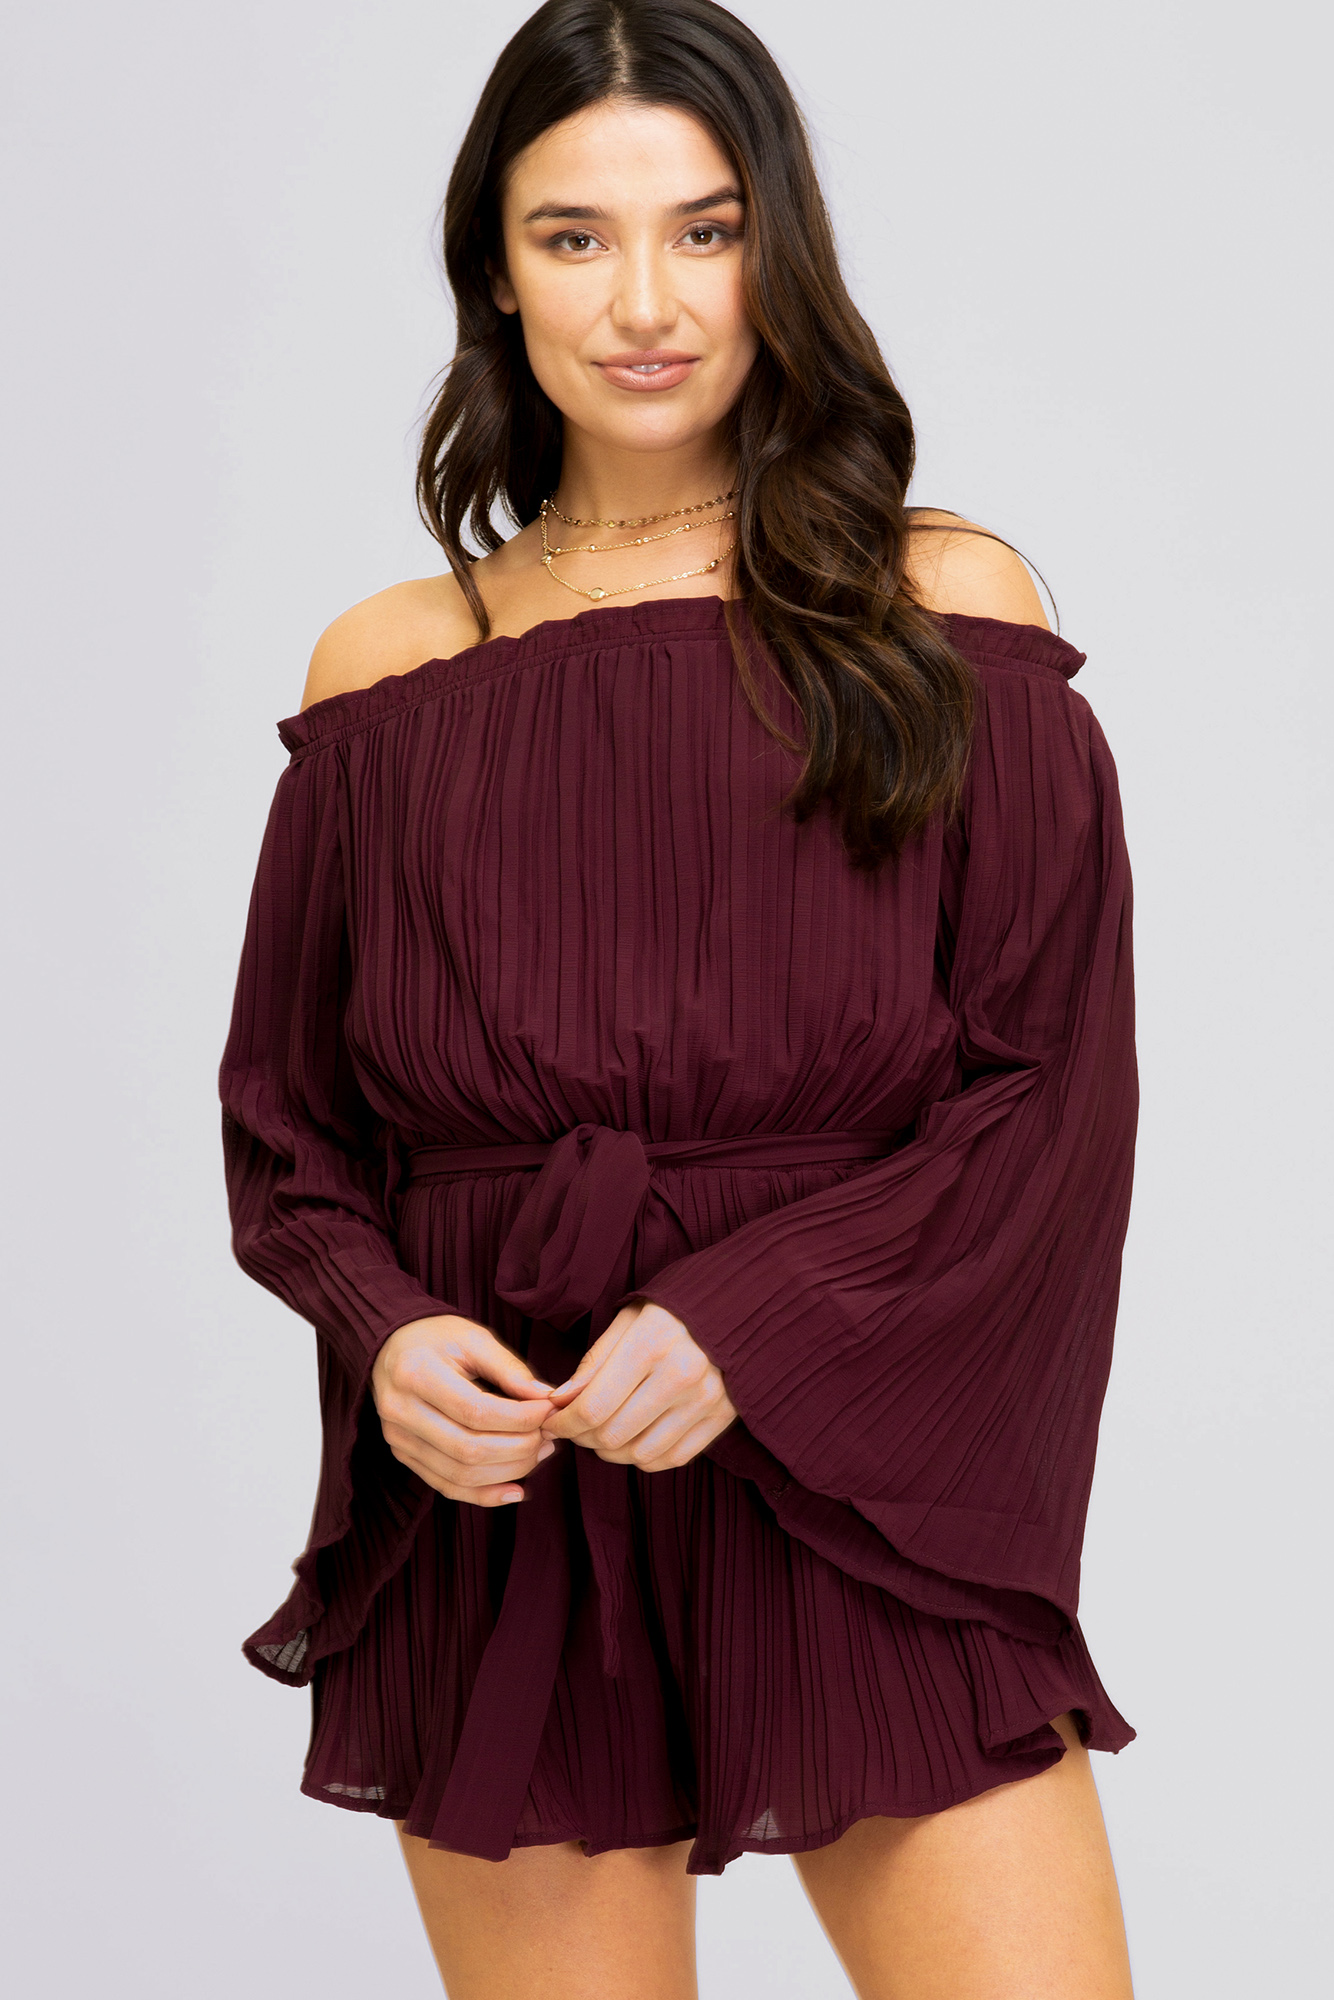 Pleated Long Sleeve Romper from She & Sky